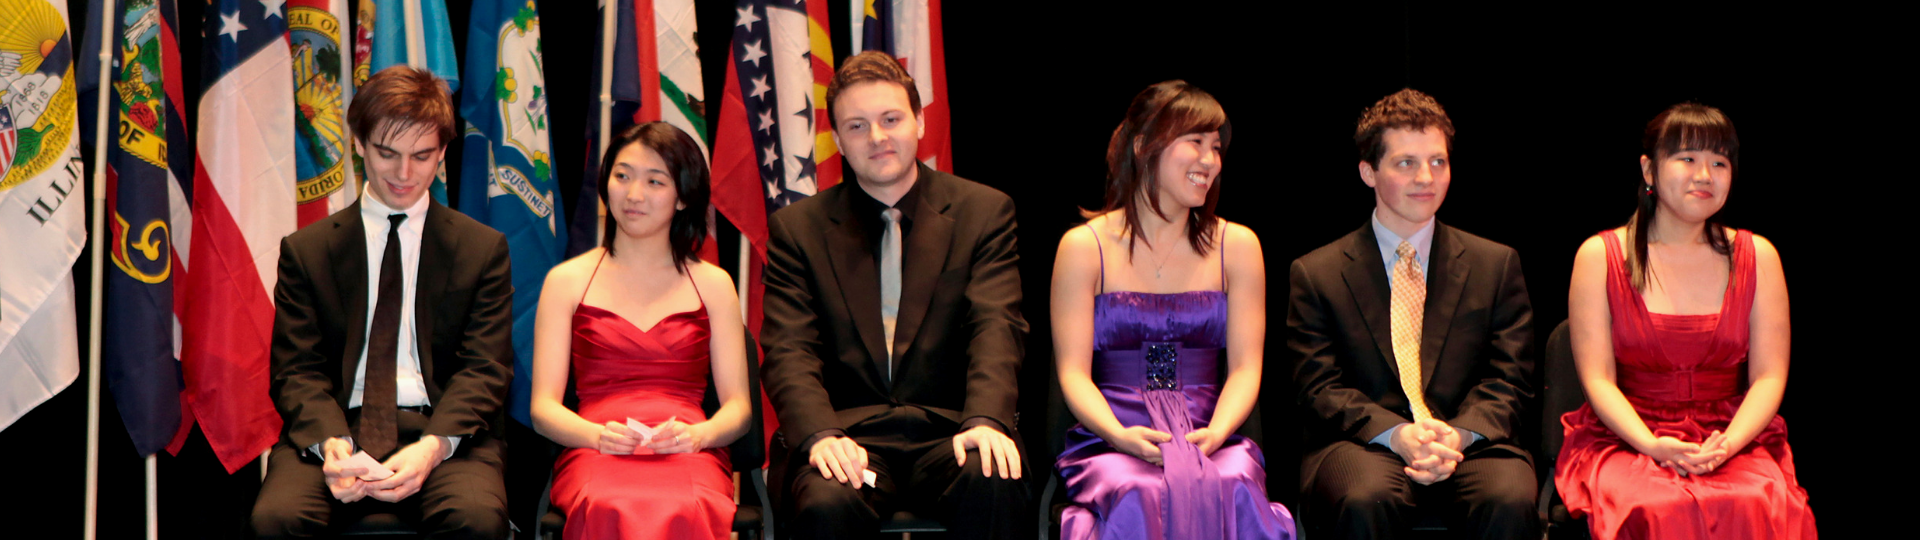 Laureates of the 2010 National Chopin Piano Competition